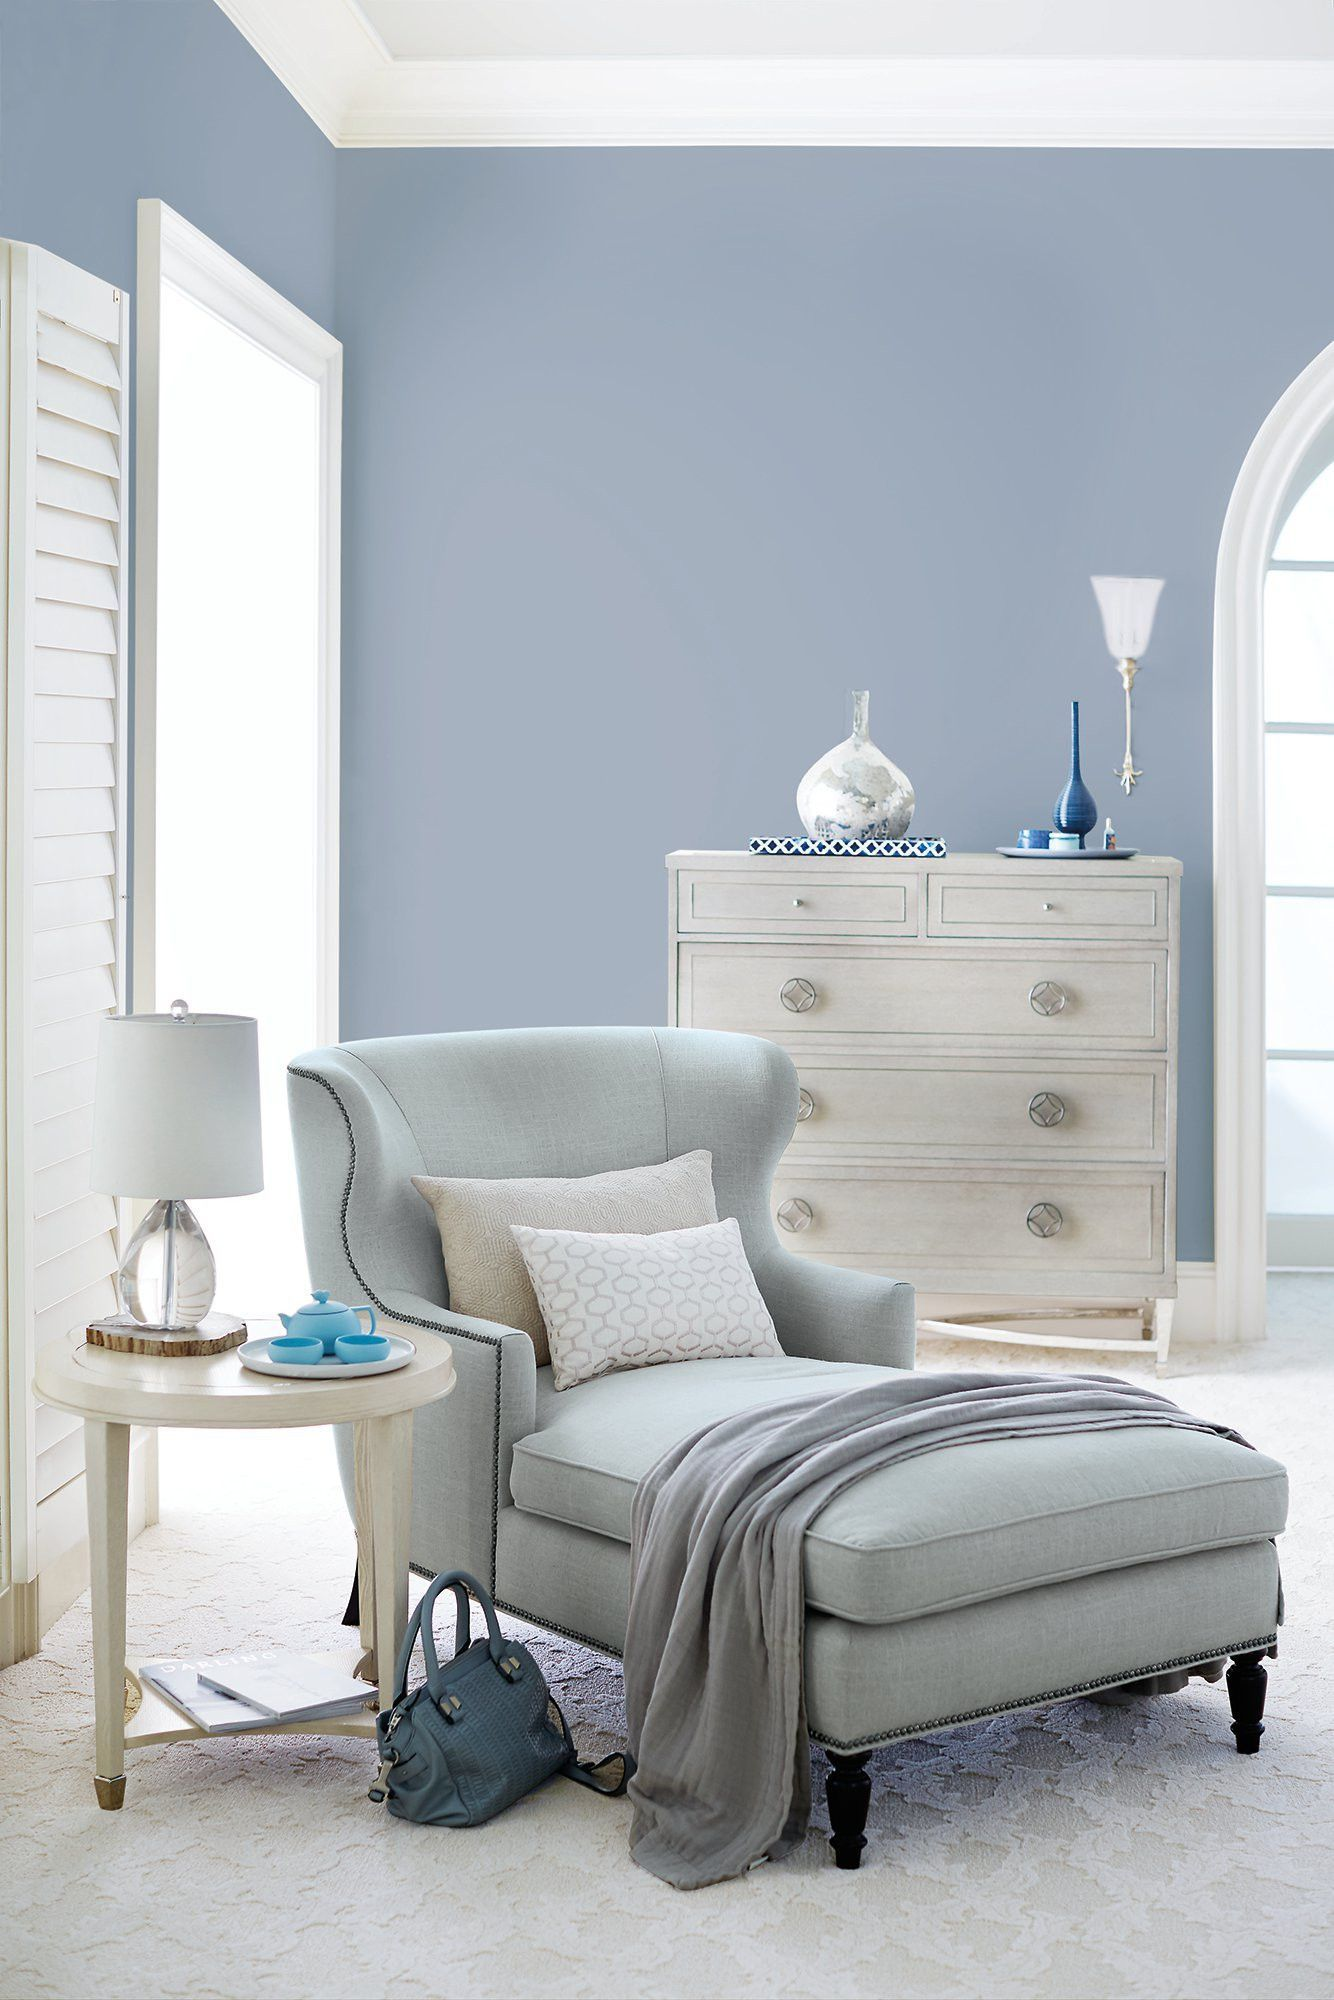 Nadine chaise bernhardt furniture blue carpet bedroom pale blue bedrooms blue bedroom walls